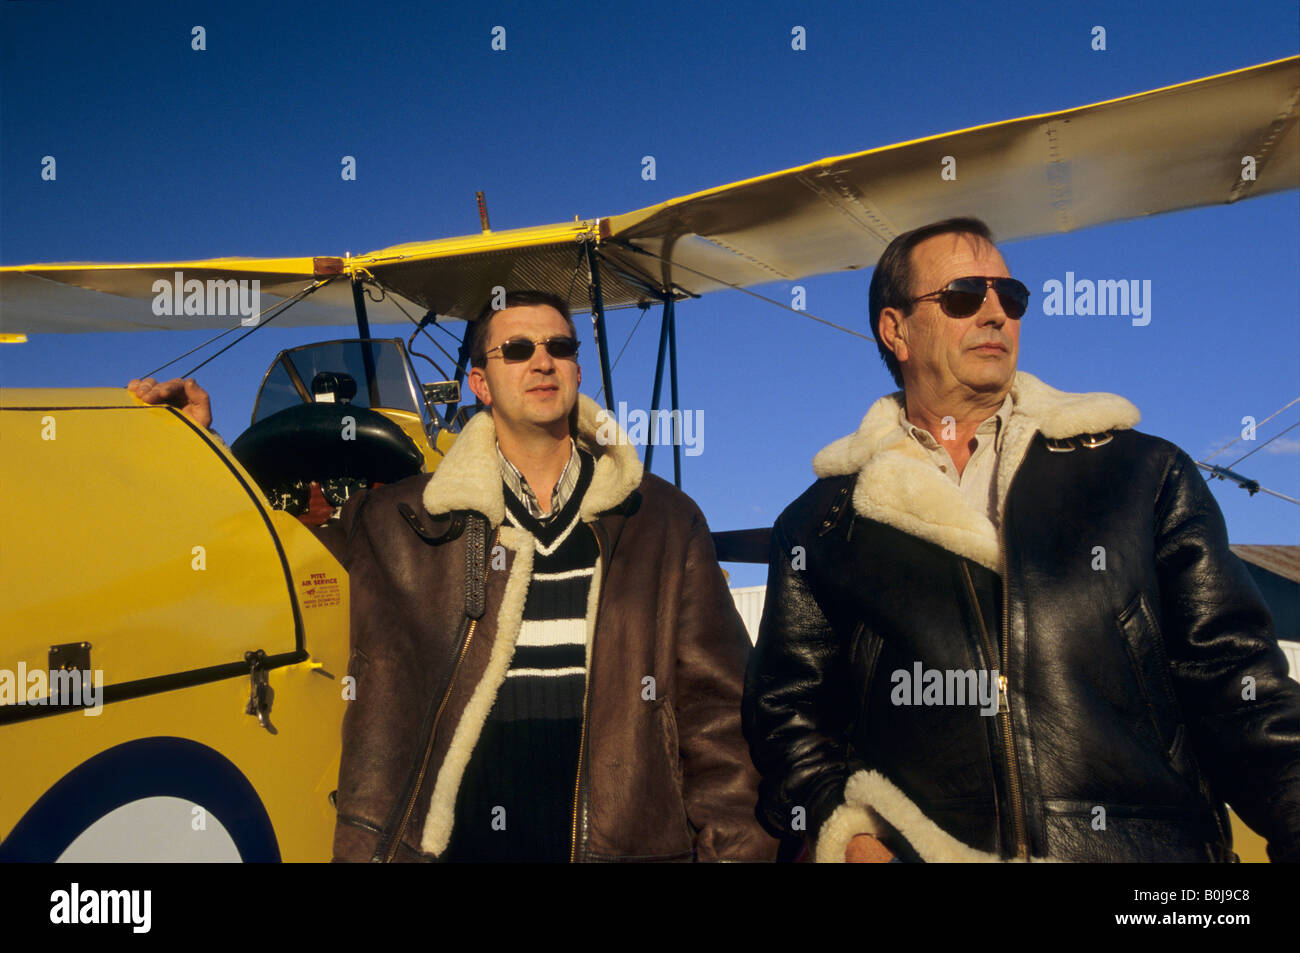 Two pilots with flying jackets near old trainer biplane De Havilland DH 82c Tiger Moth - Stock Image